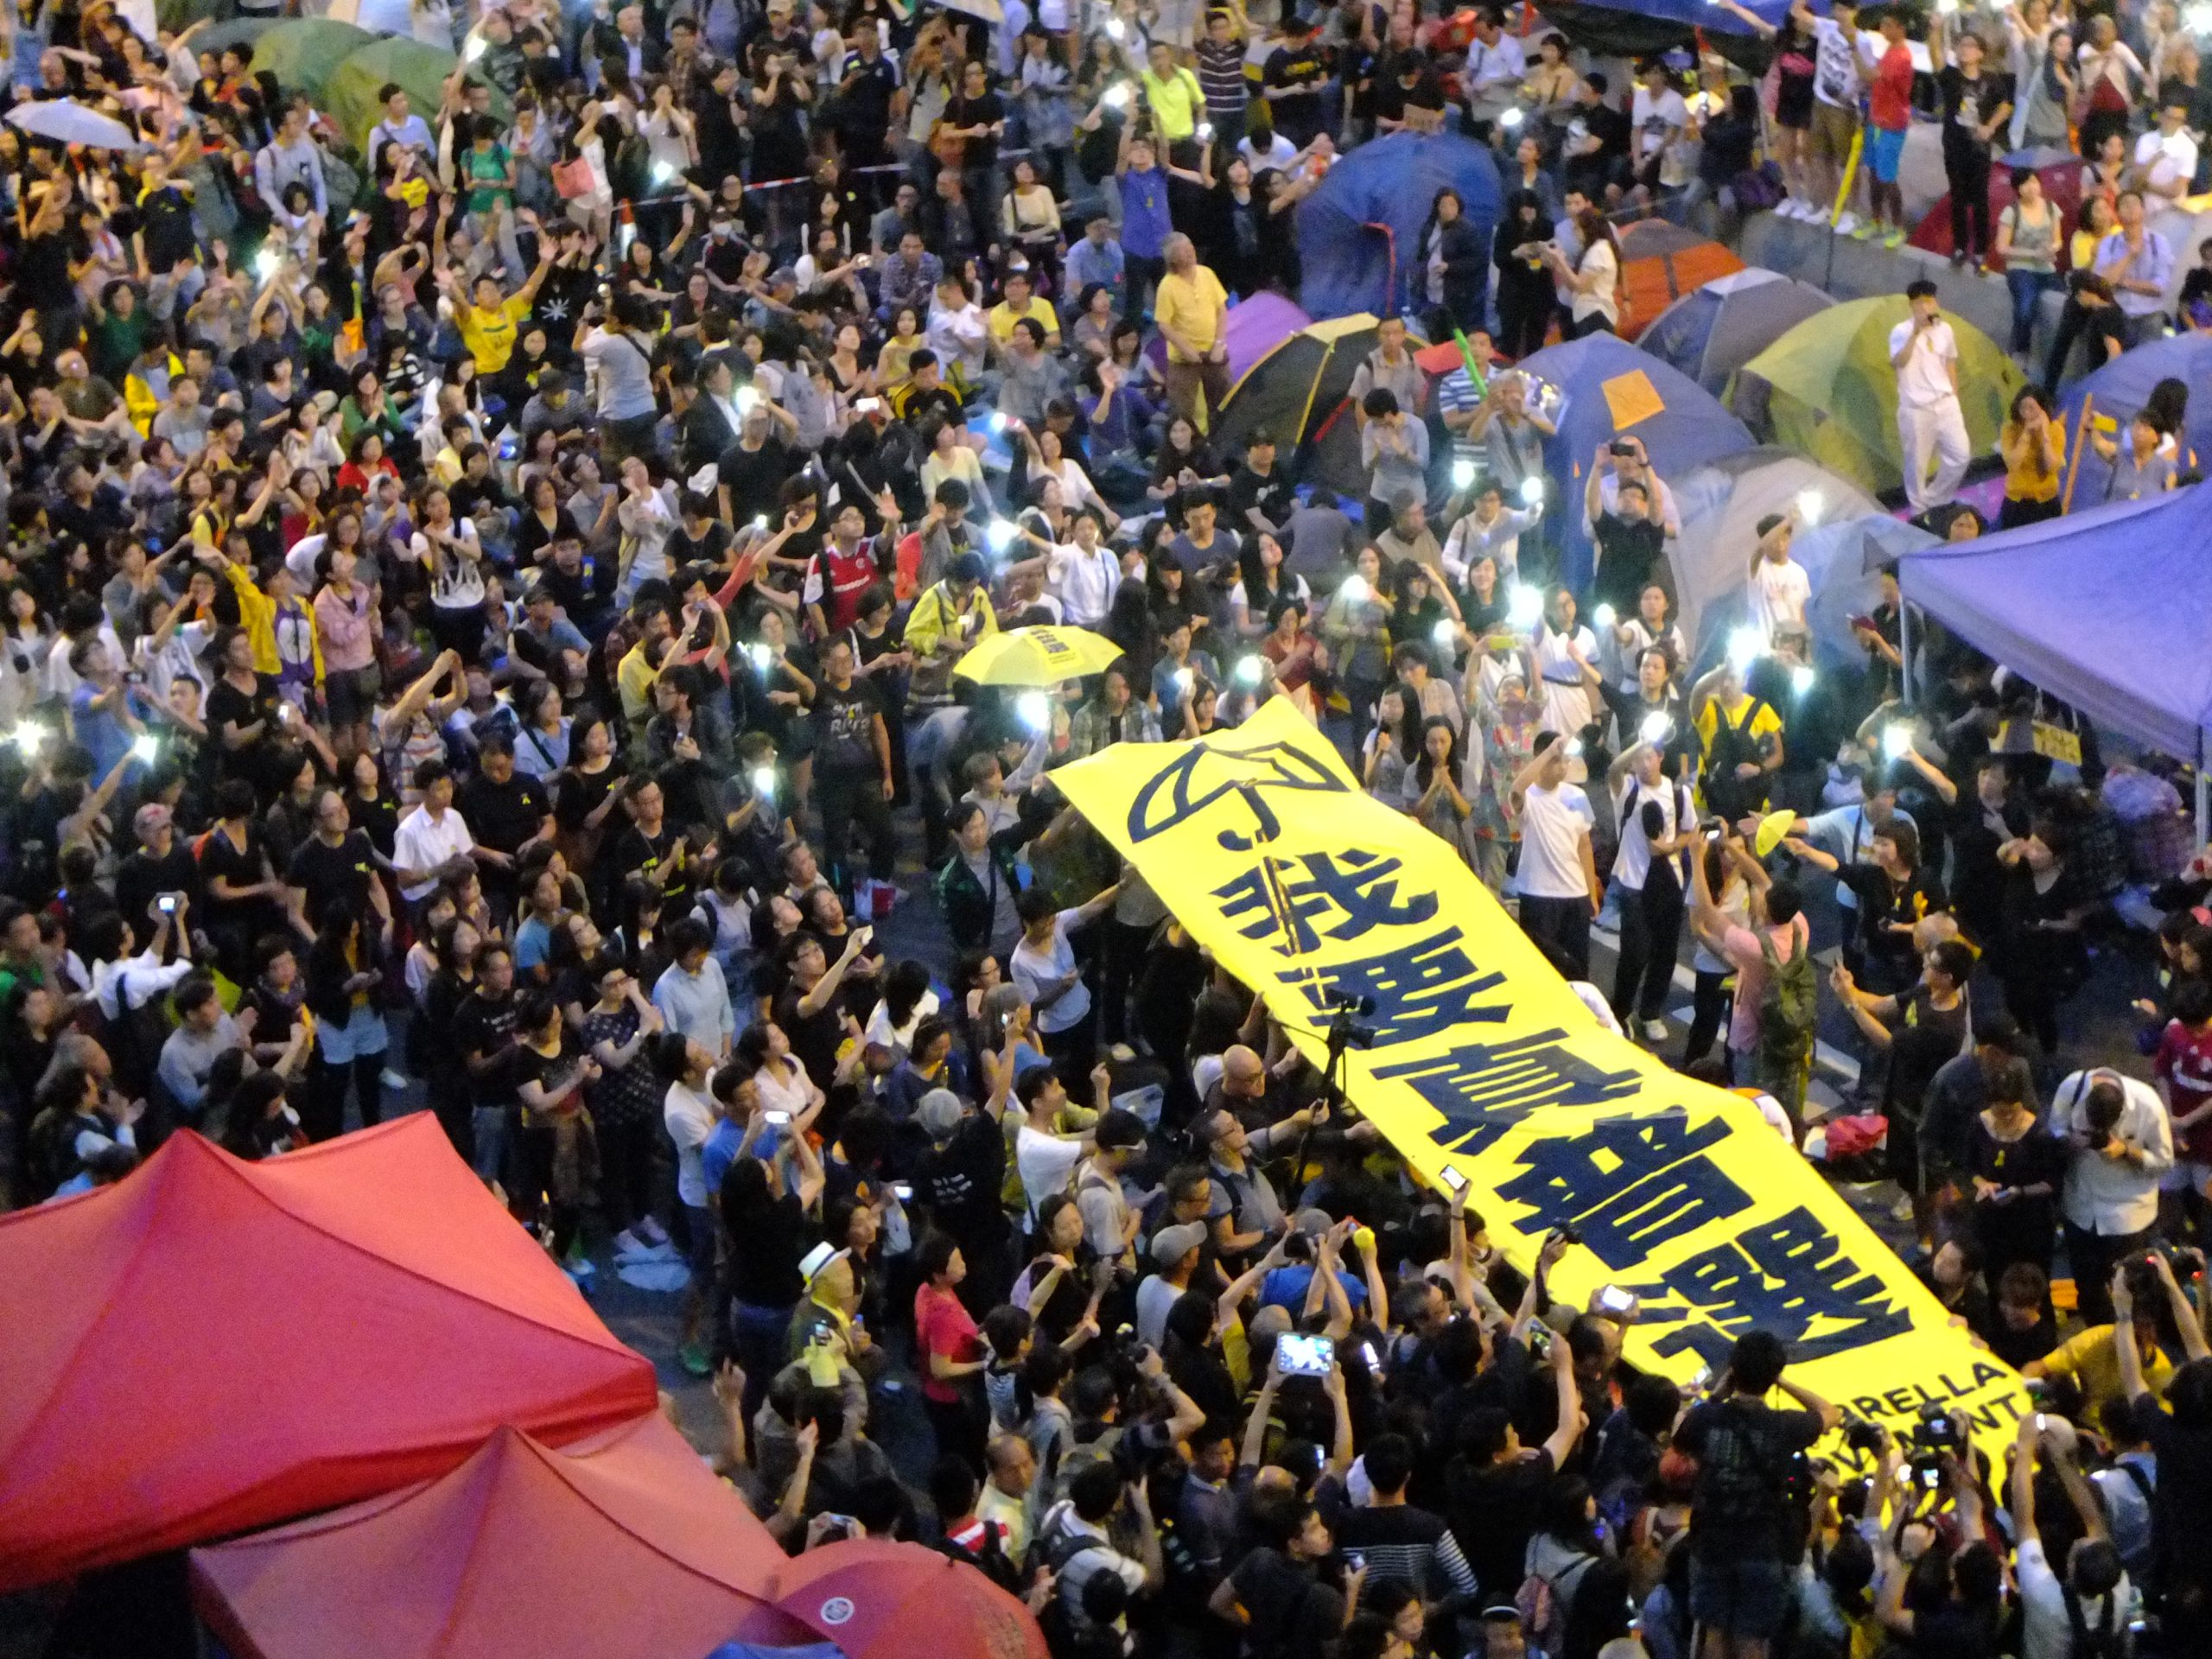 """Hong Kongers Demonstrate for """"Real Universal Suffrage"""" (Wikimedia Commons)"""